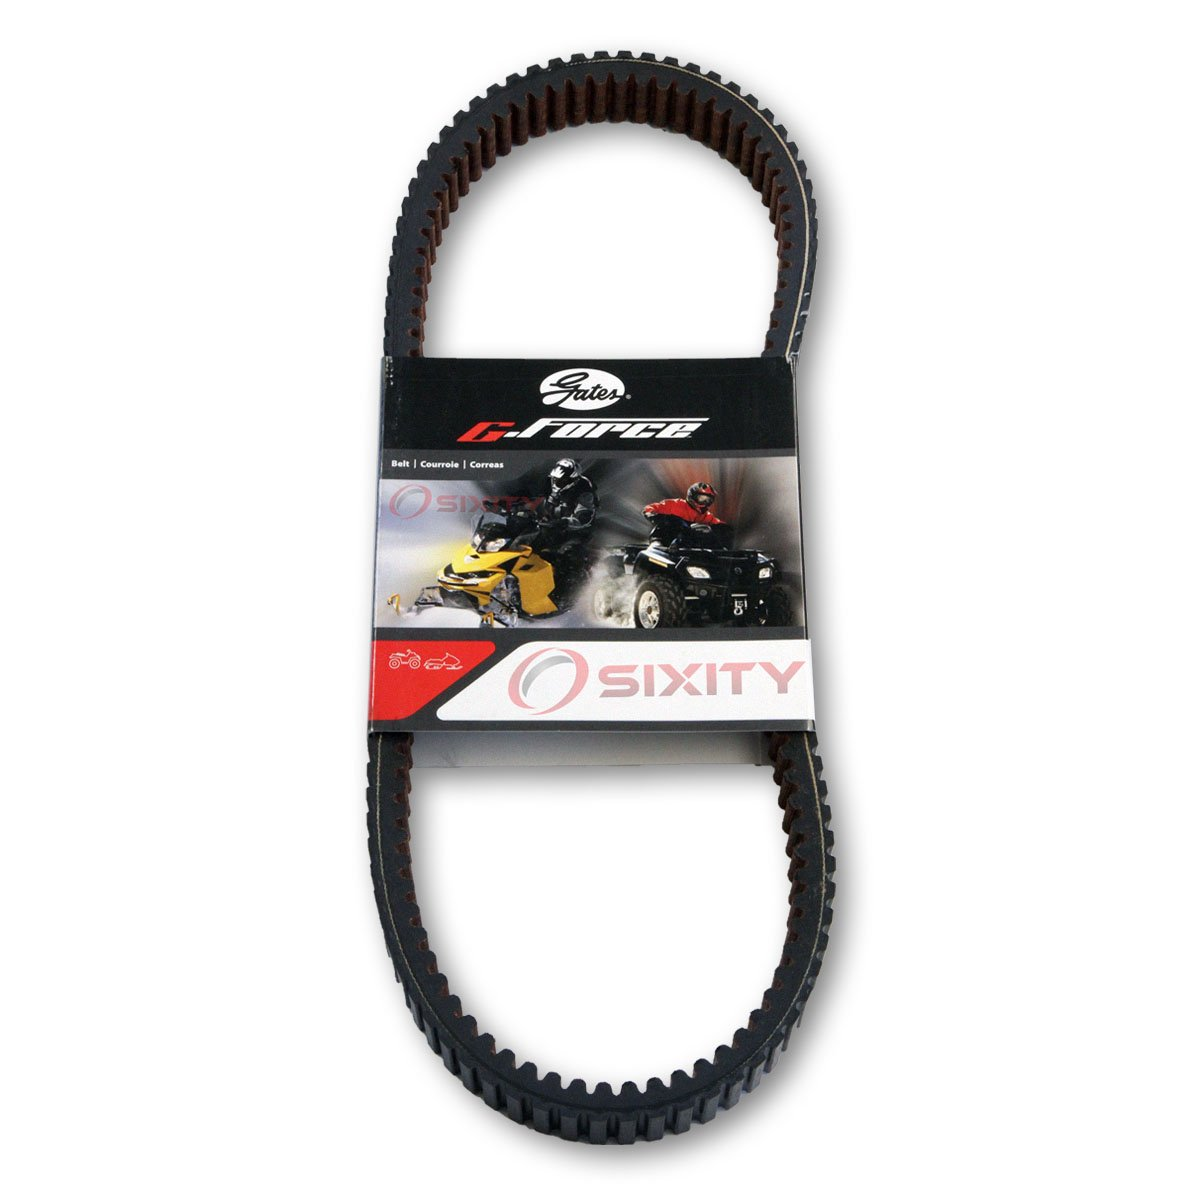 Gates Drive Belt 2013 Polaris Ranger RZR XP 900 HO Jagged X Edition G-Force CVT Heavy Duty OEM Upgrade